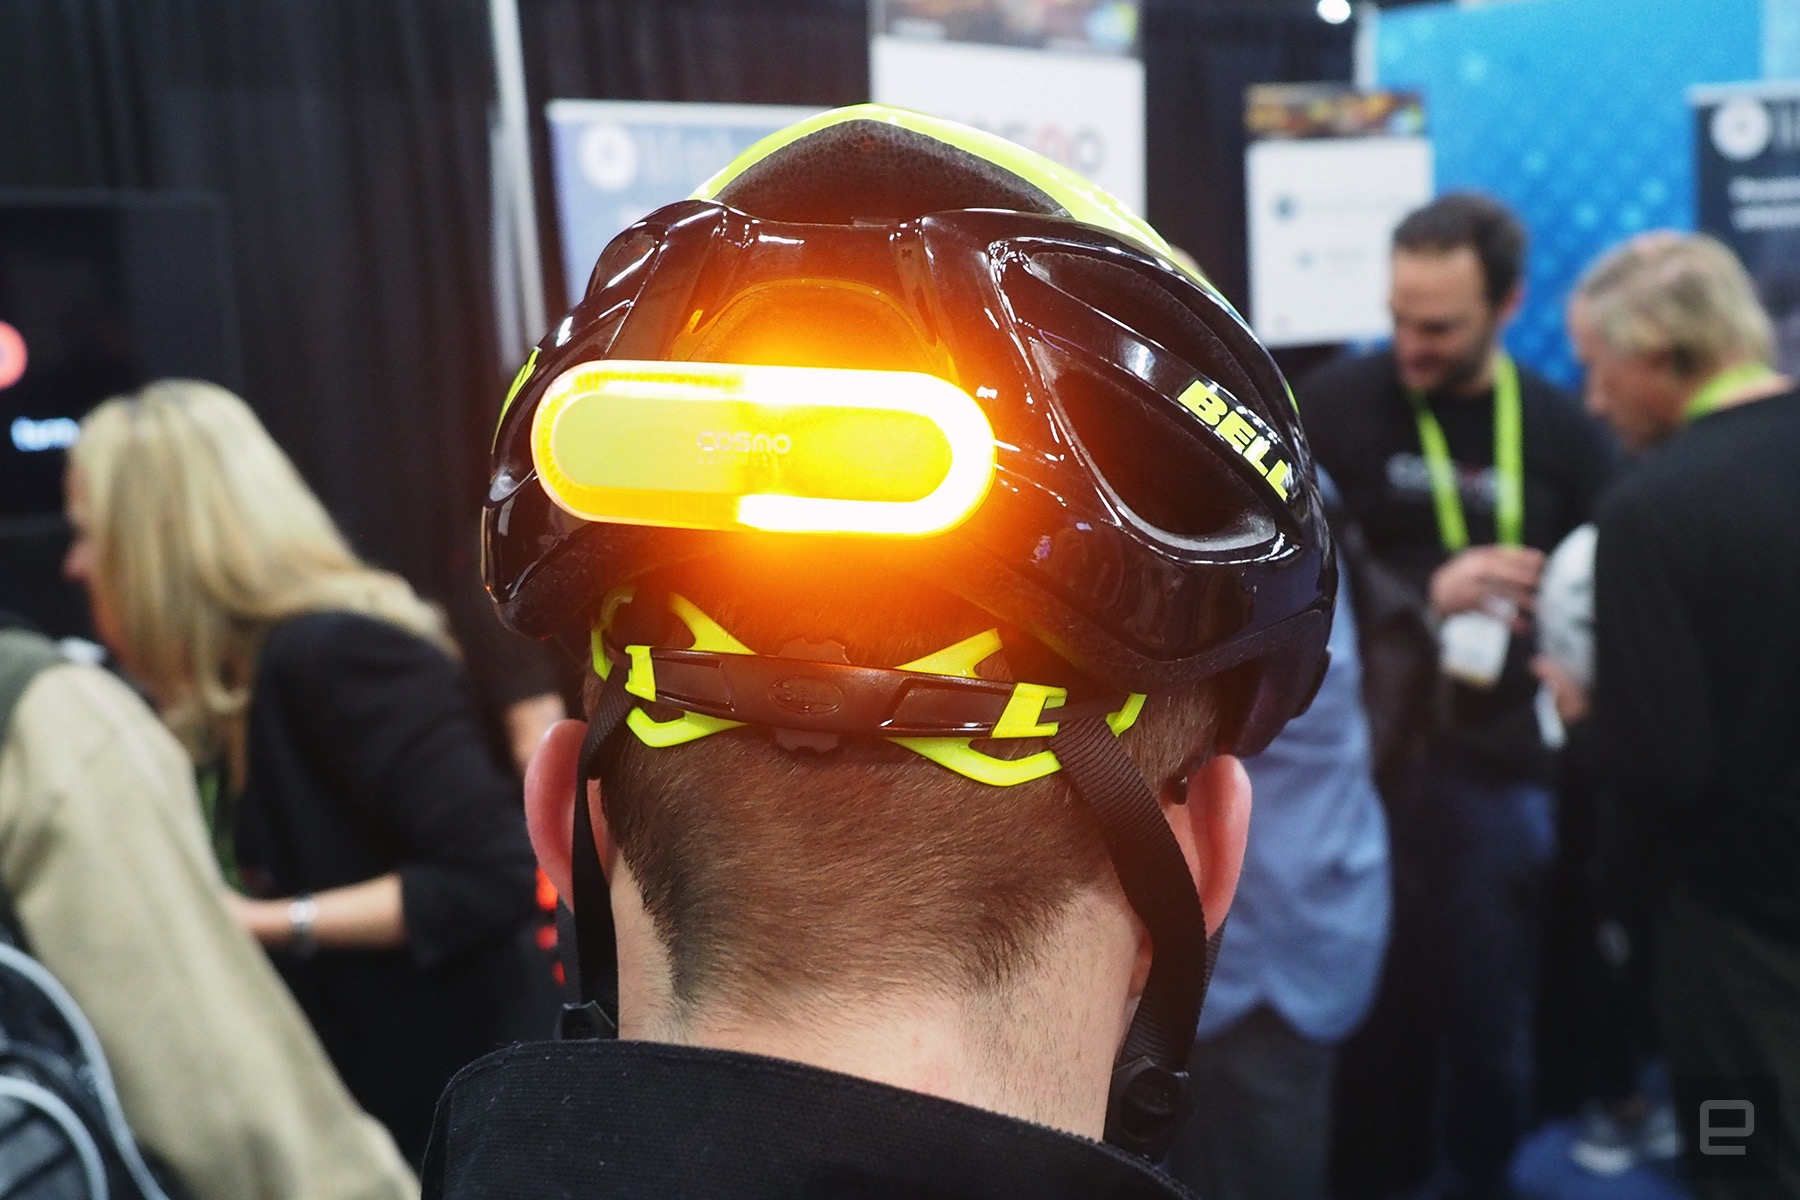 Cosmo's bike helmet light will alert others when you fall ...